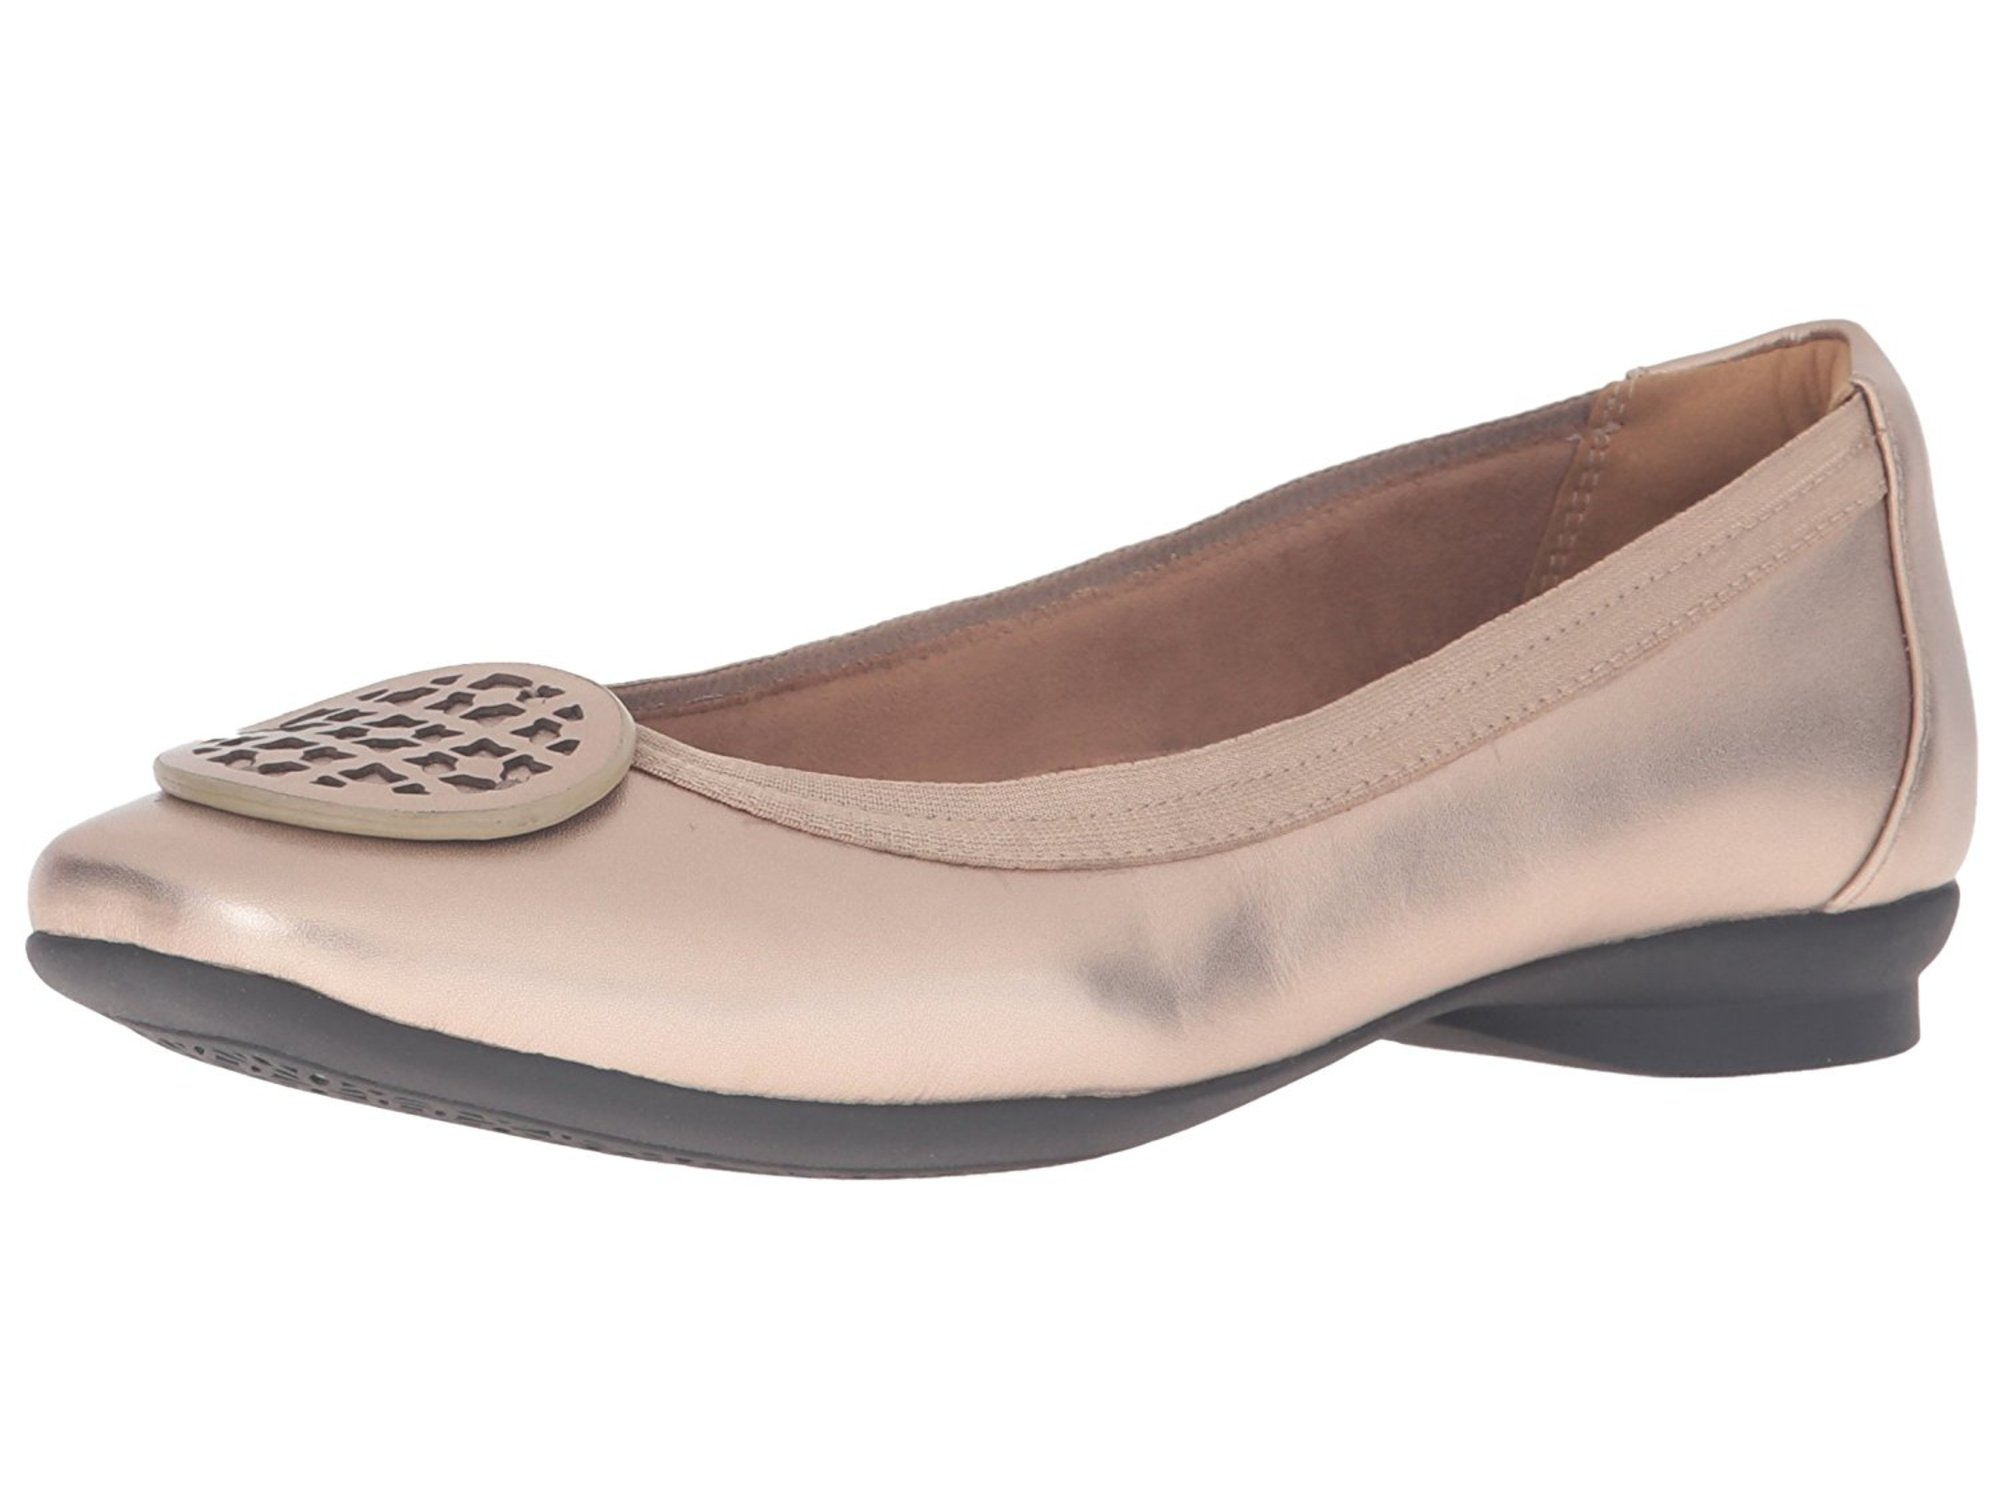 a23116fc861a Clarks Womens Candra Blush Leather Closed Toe Slide